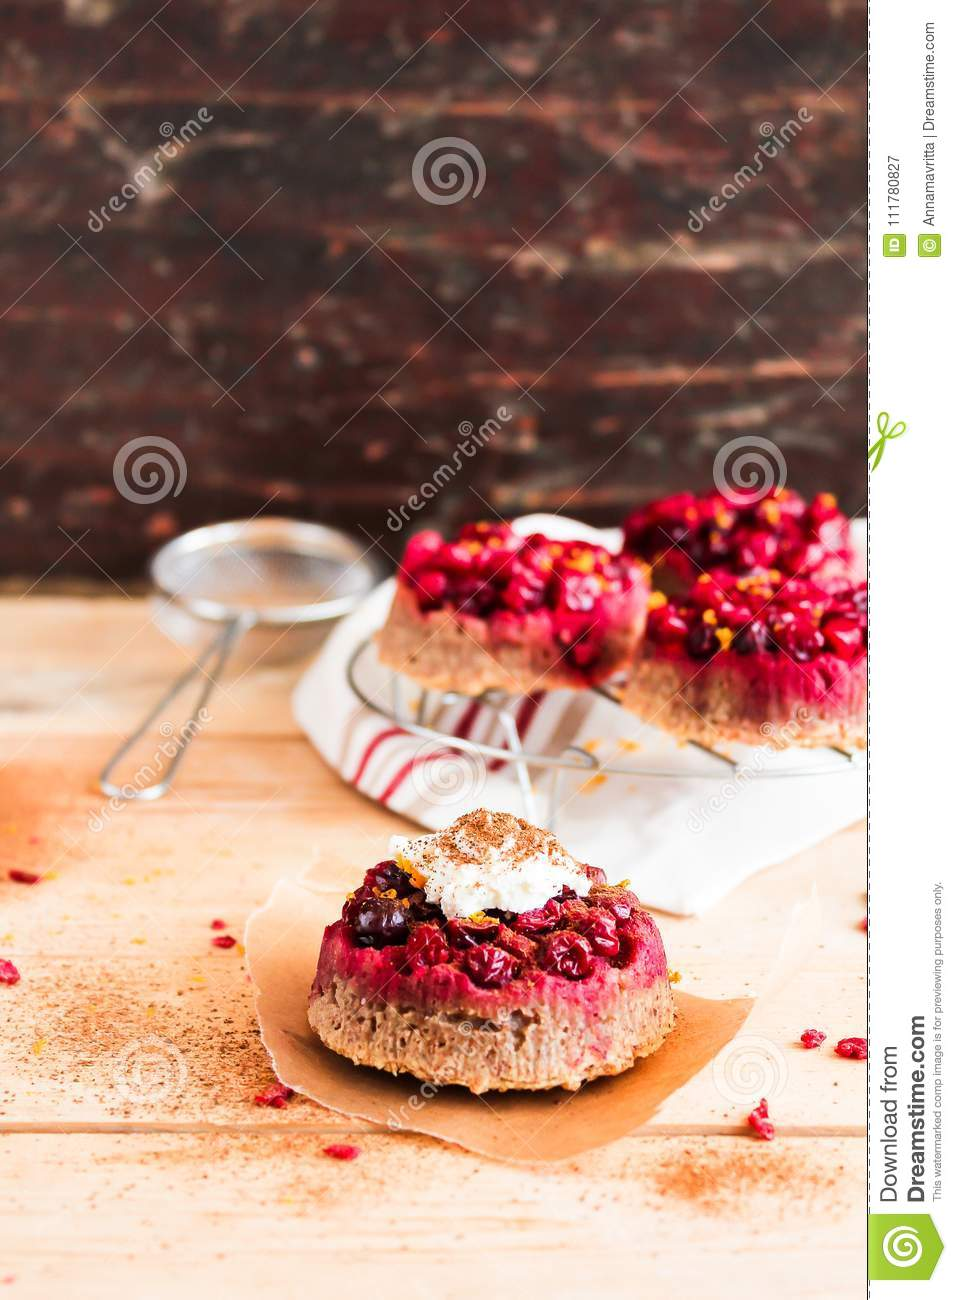 Freshly baked cranberry mini cakes on a wooden table, selective focus. Easter cakes.